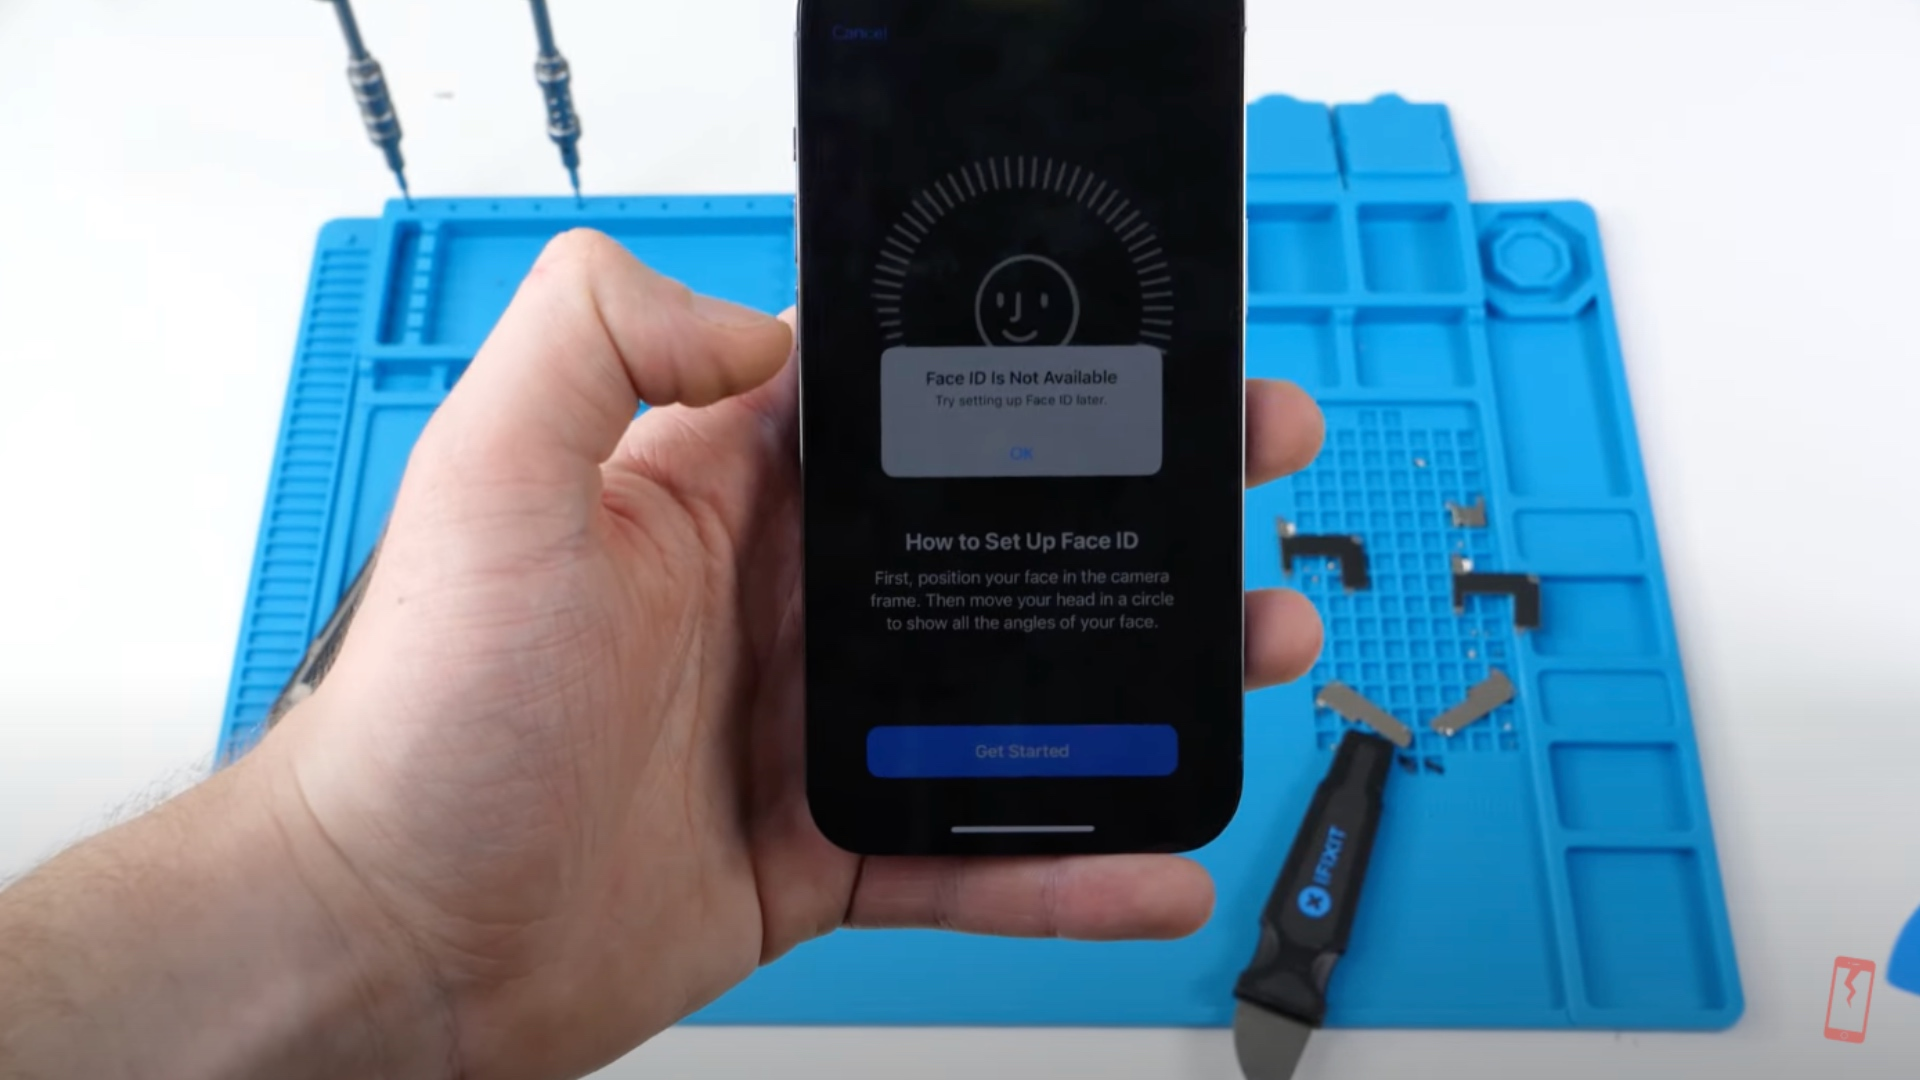 iphone-13-face-id-not-available-screen-replacement-9to5mac